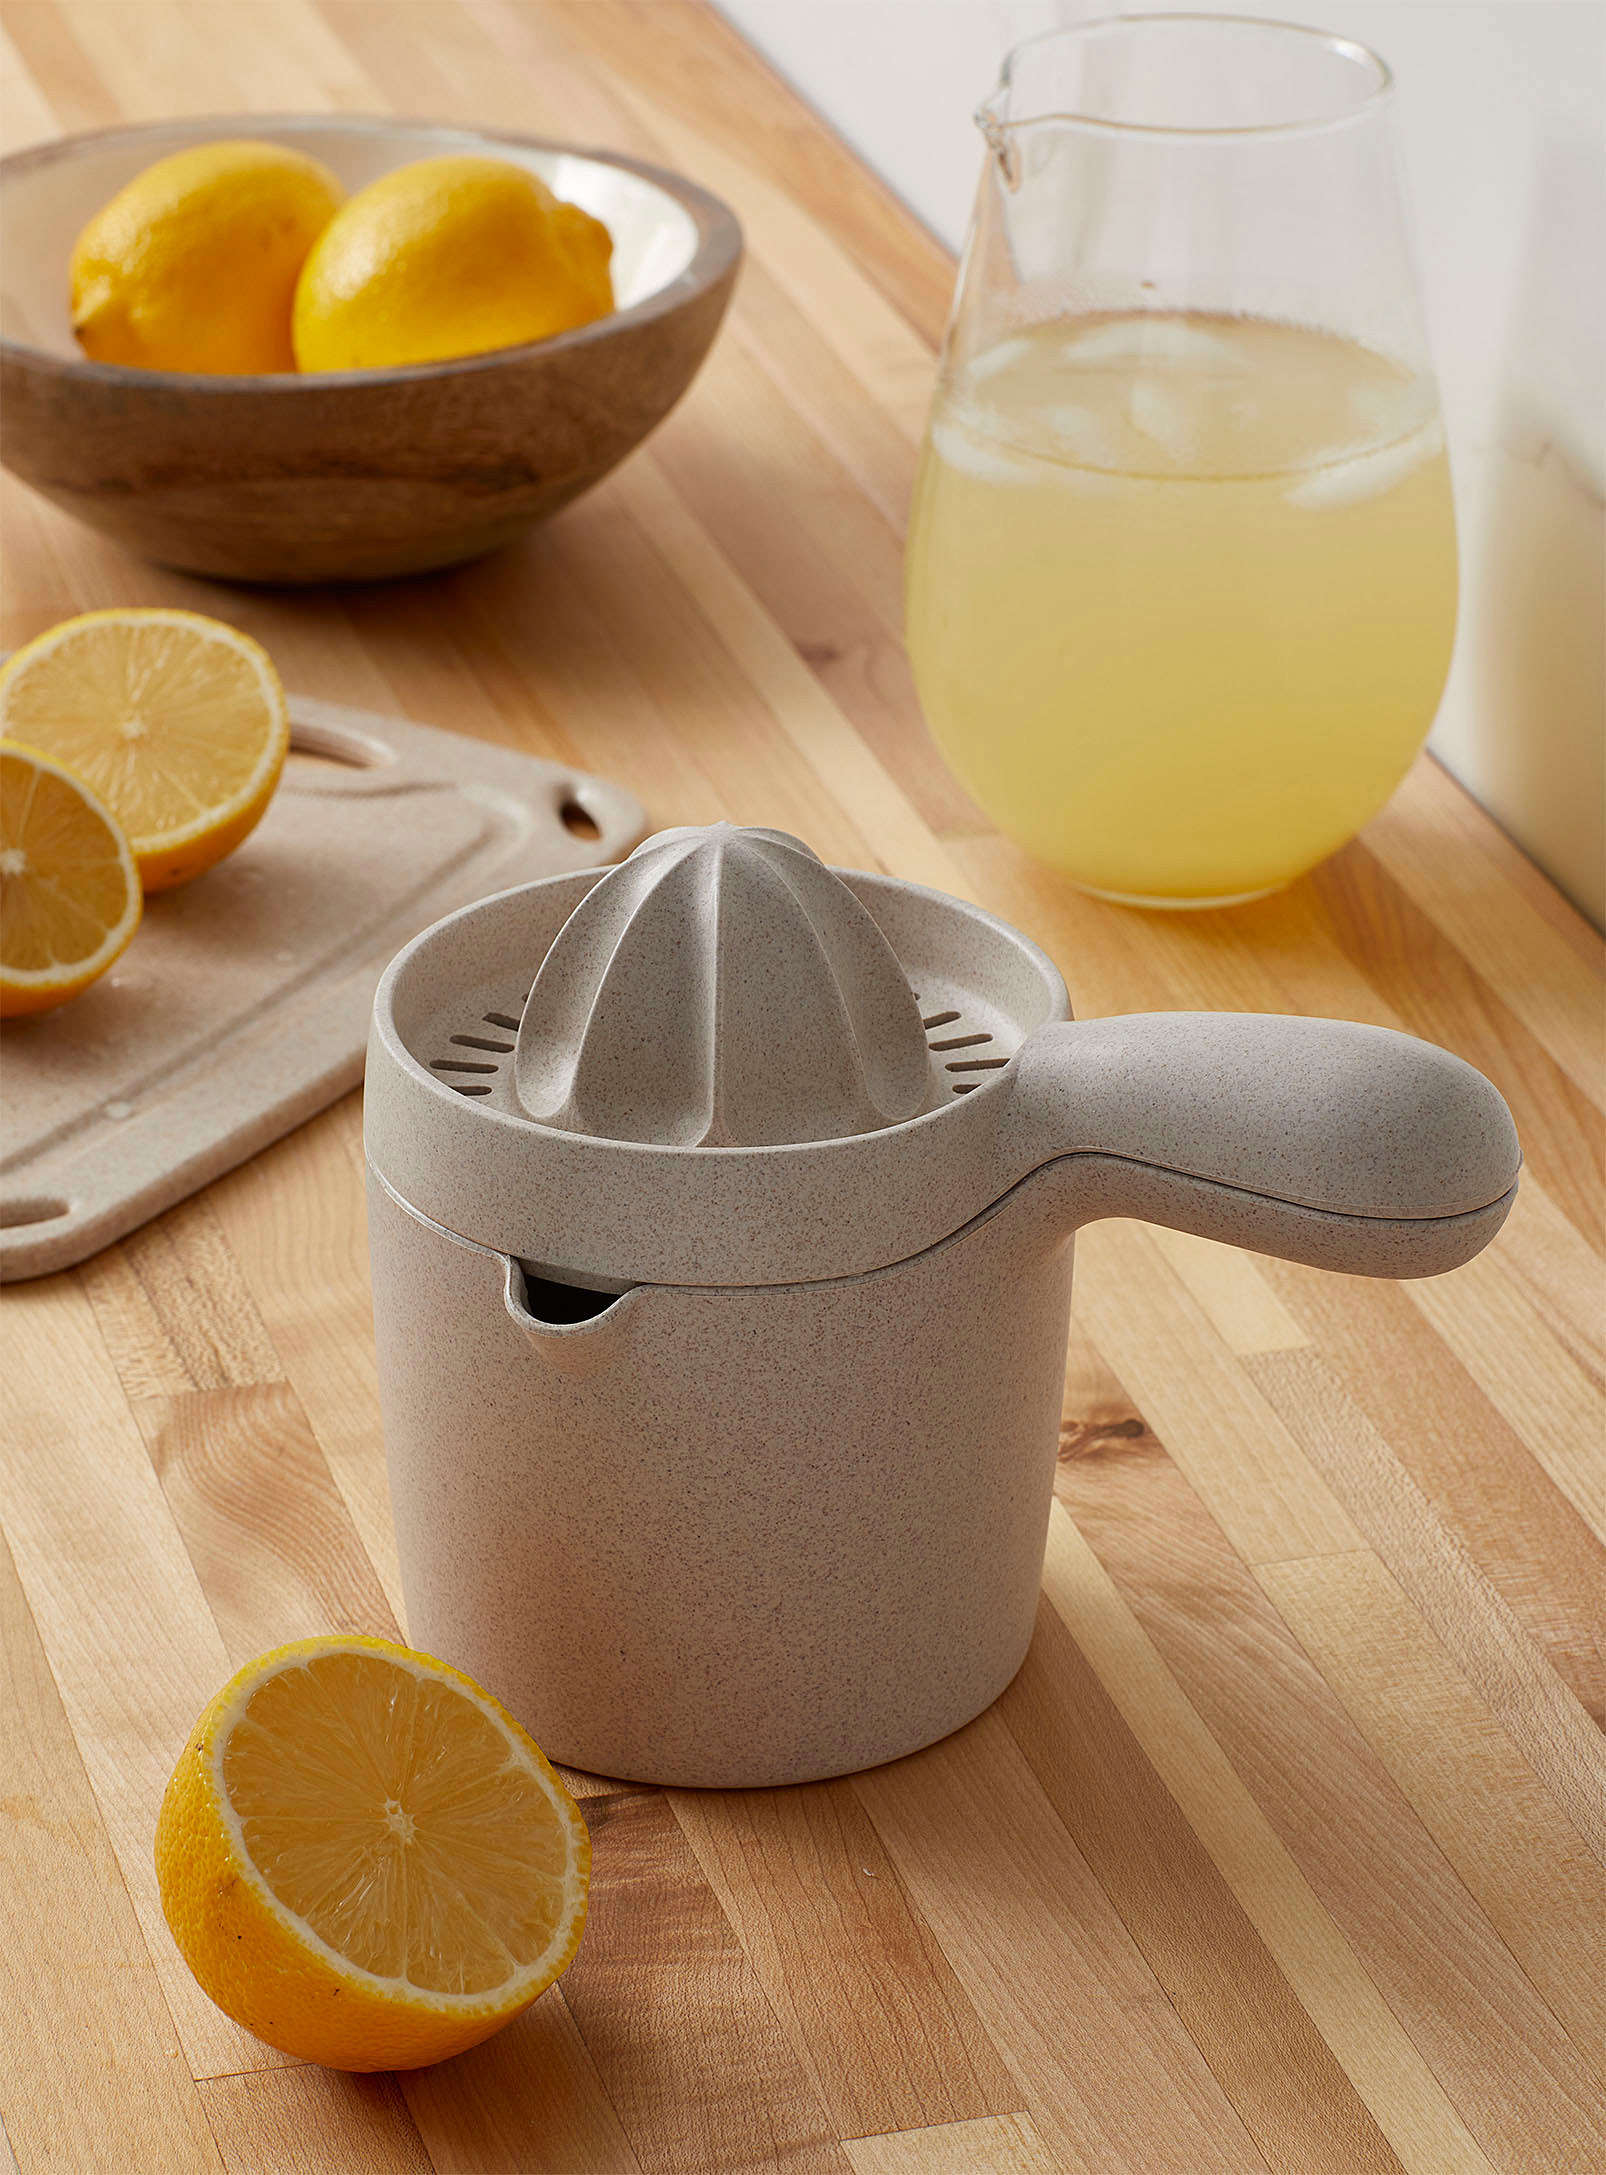 A small citrus press with a handle on top of a small measuring cup with an half cut lemon beside it